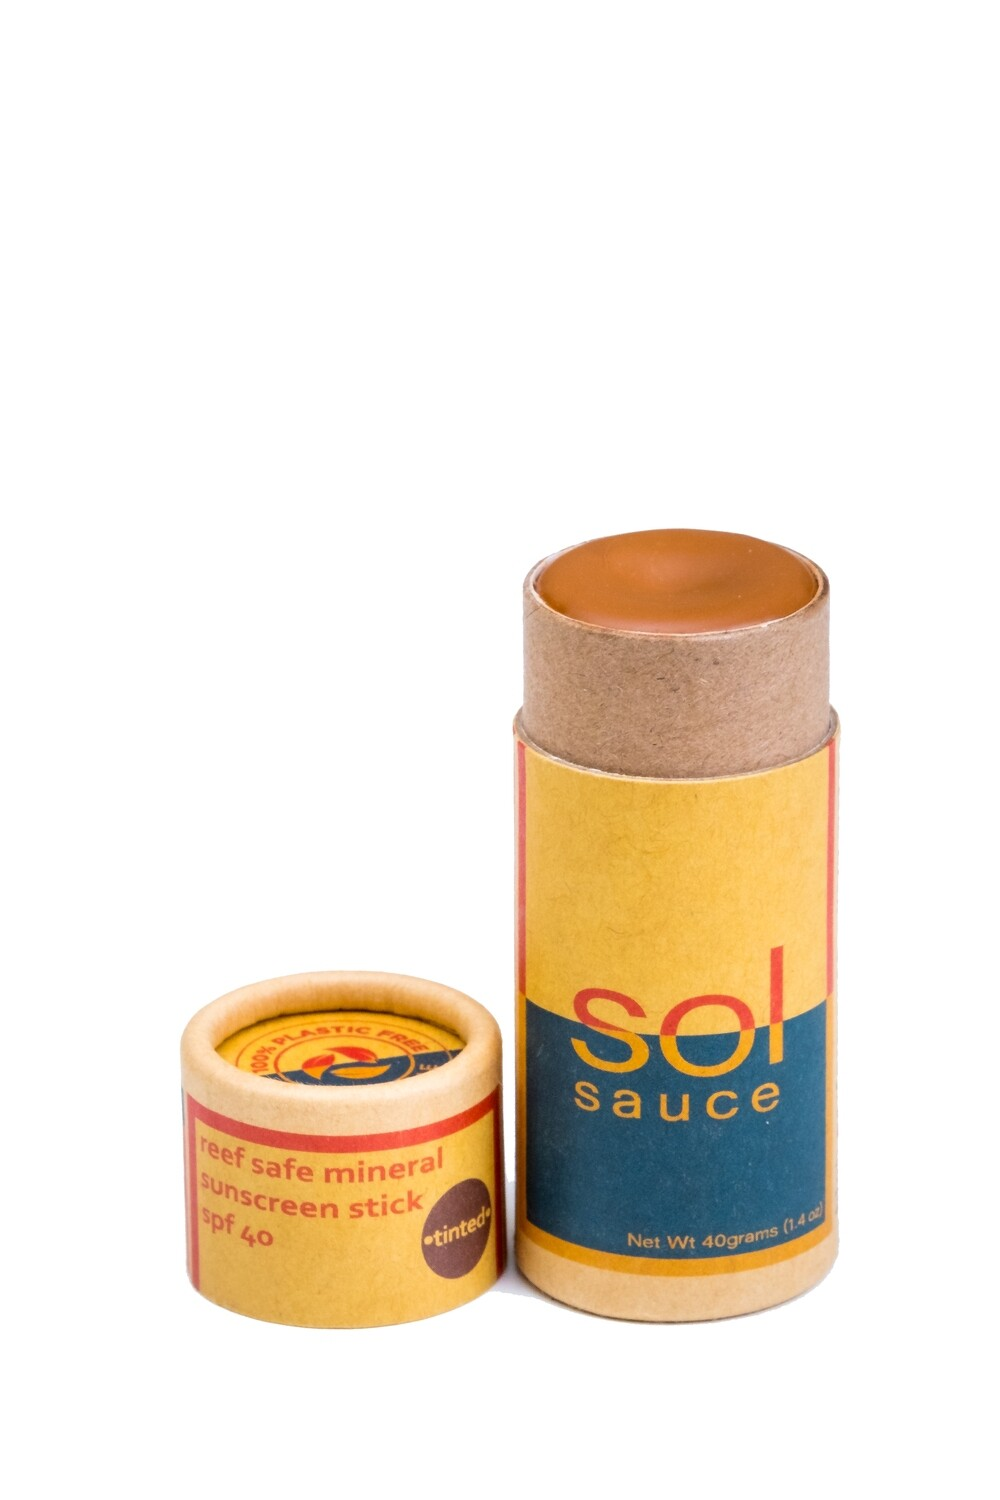 Sol Sauce Sunscreen Stick - Tinted